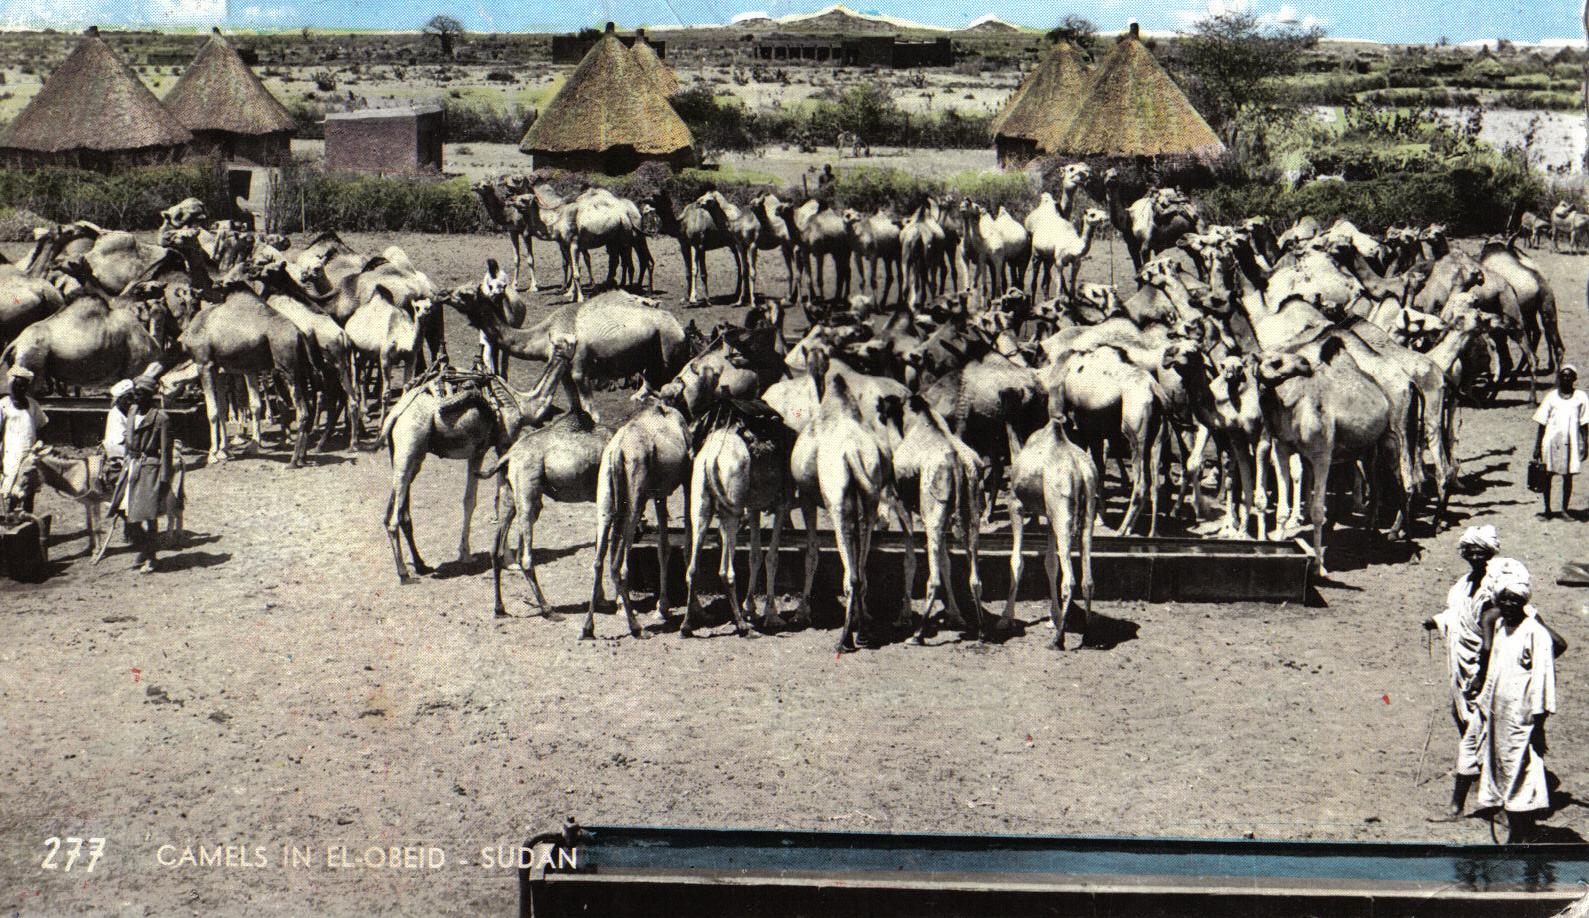 Camels in El-Obeid (early 1960s)